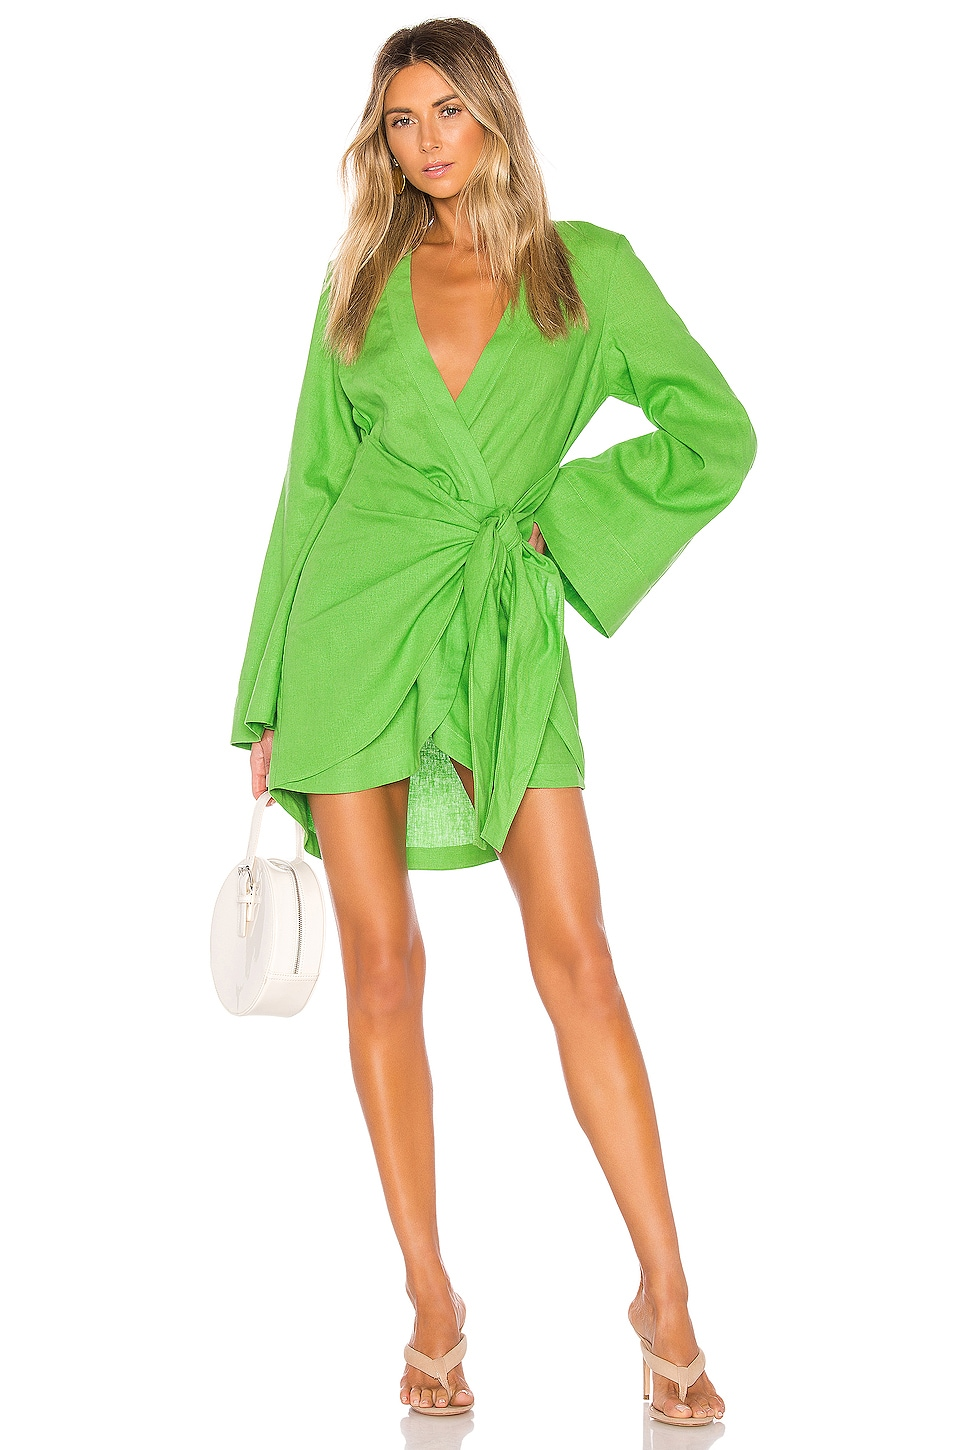 L'Academie The Janeiro Mini Dress in Lime